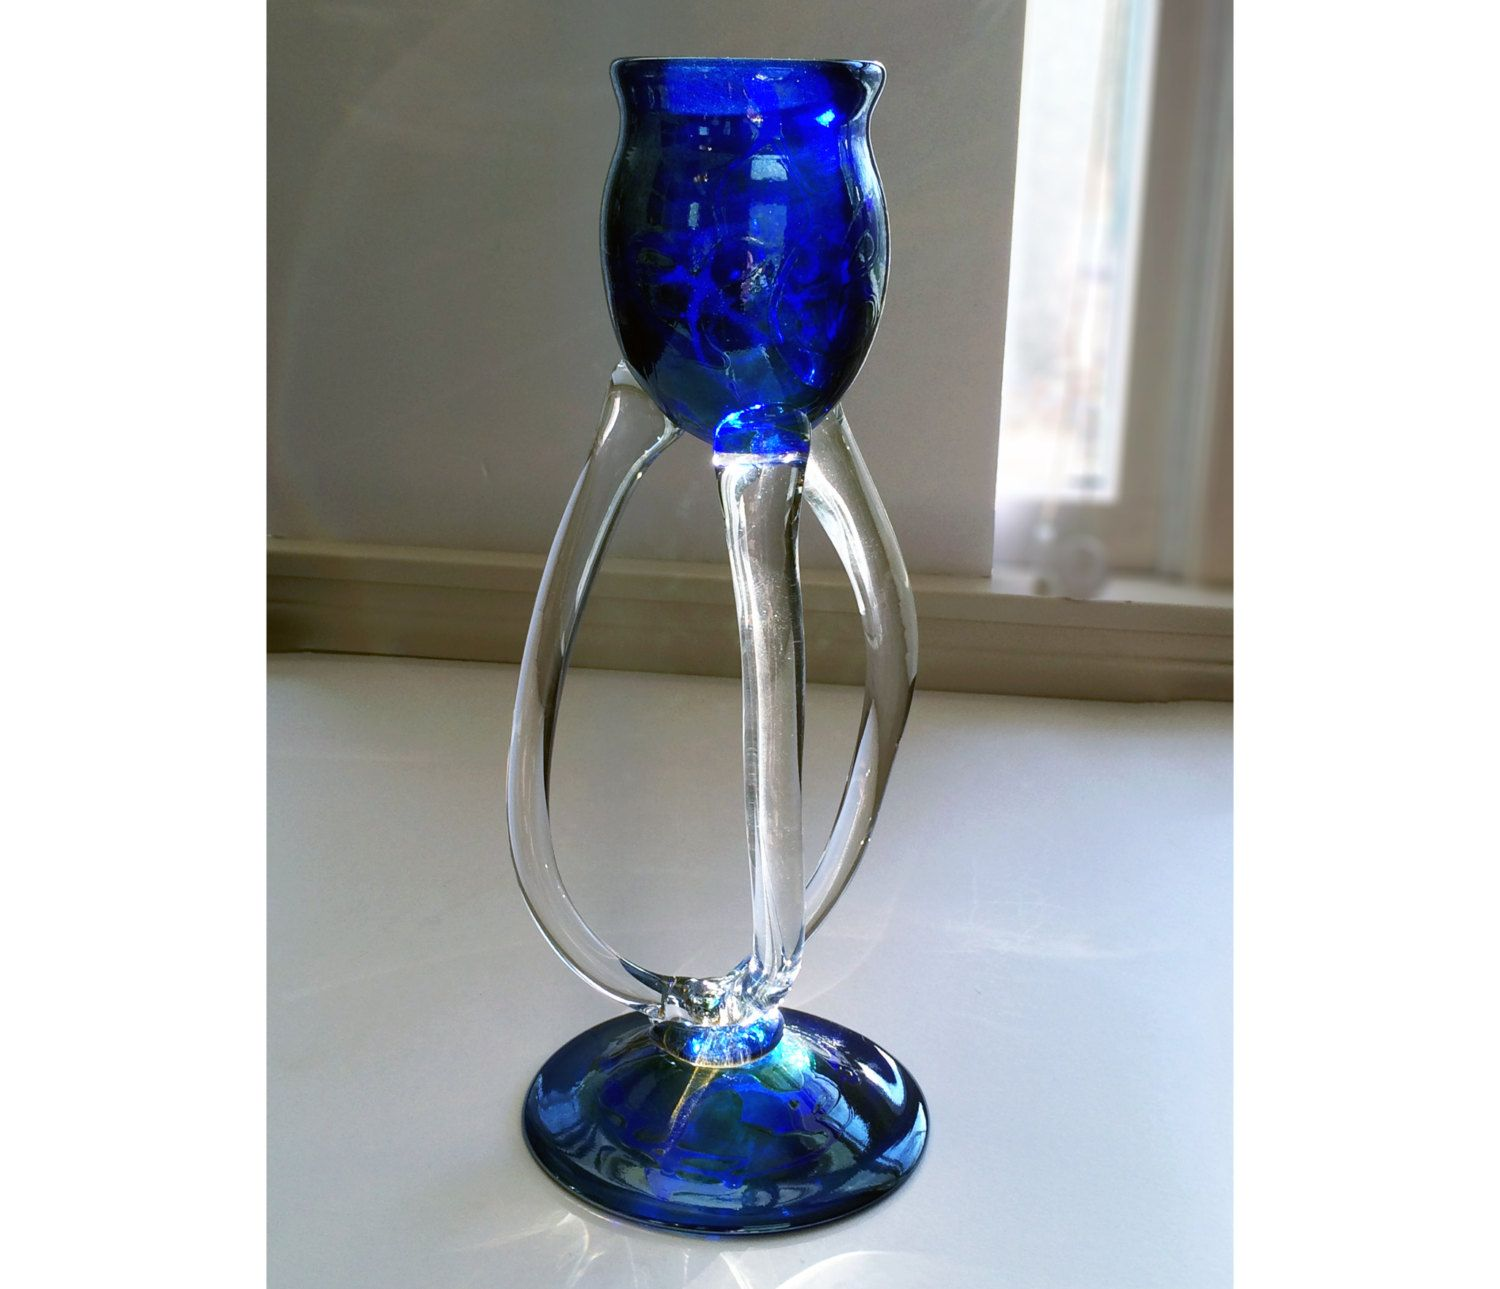 Stephen fellerman tall legged art glass candle holder blown